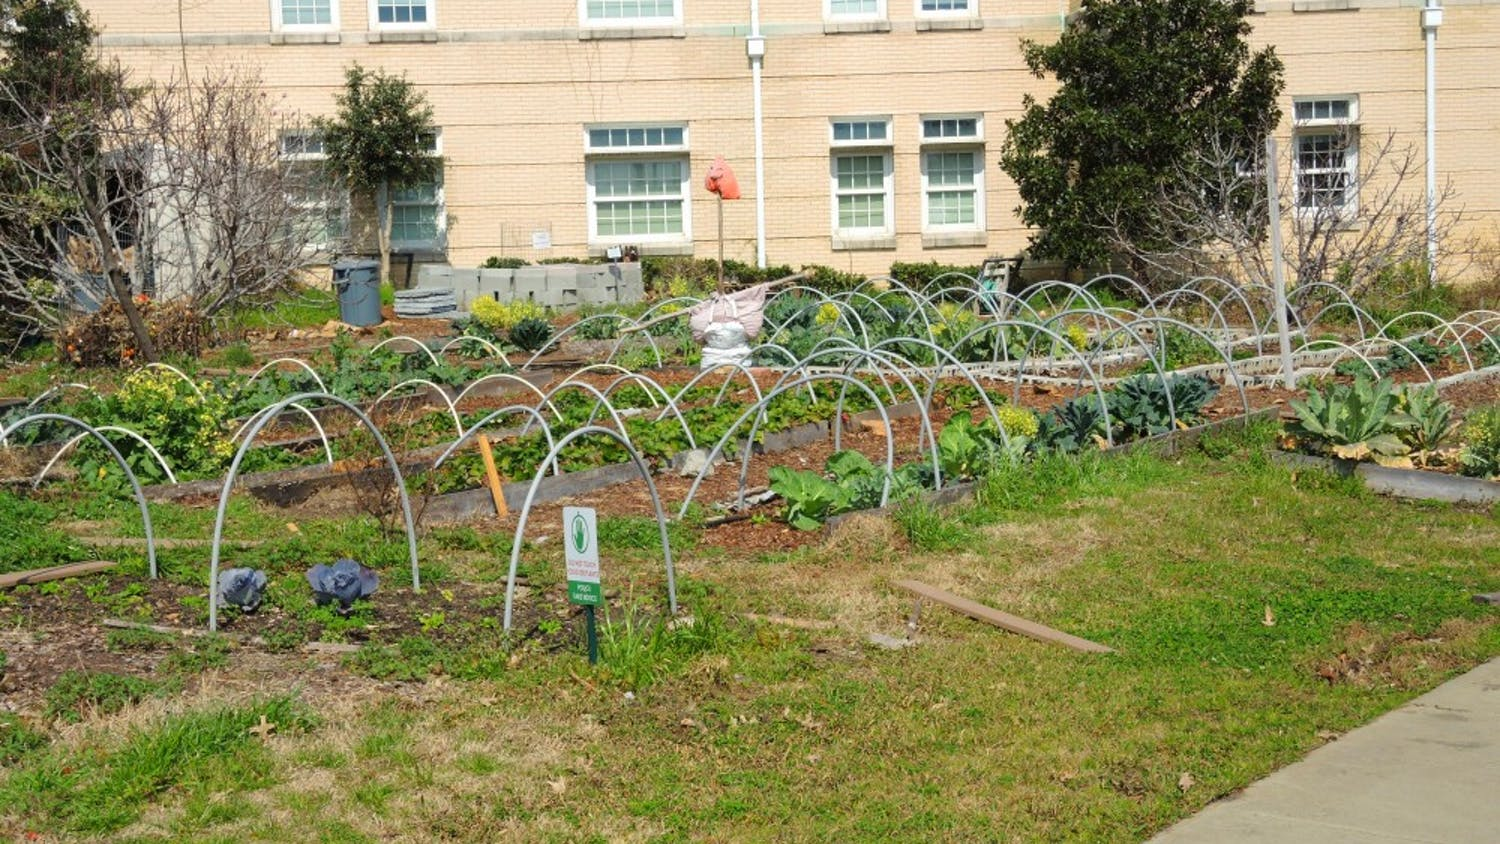 The Sustainable Carolina Farm and Gardens flourishes outside of Green Quad, and their produce will be sold at the Healthy Carolina Farmer's Market.